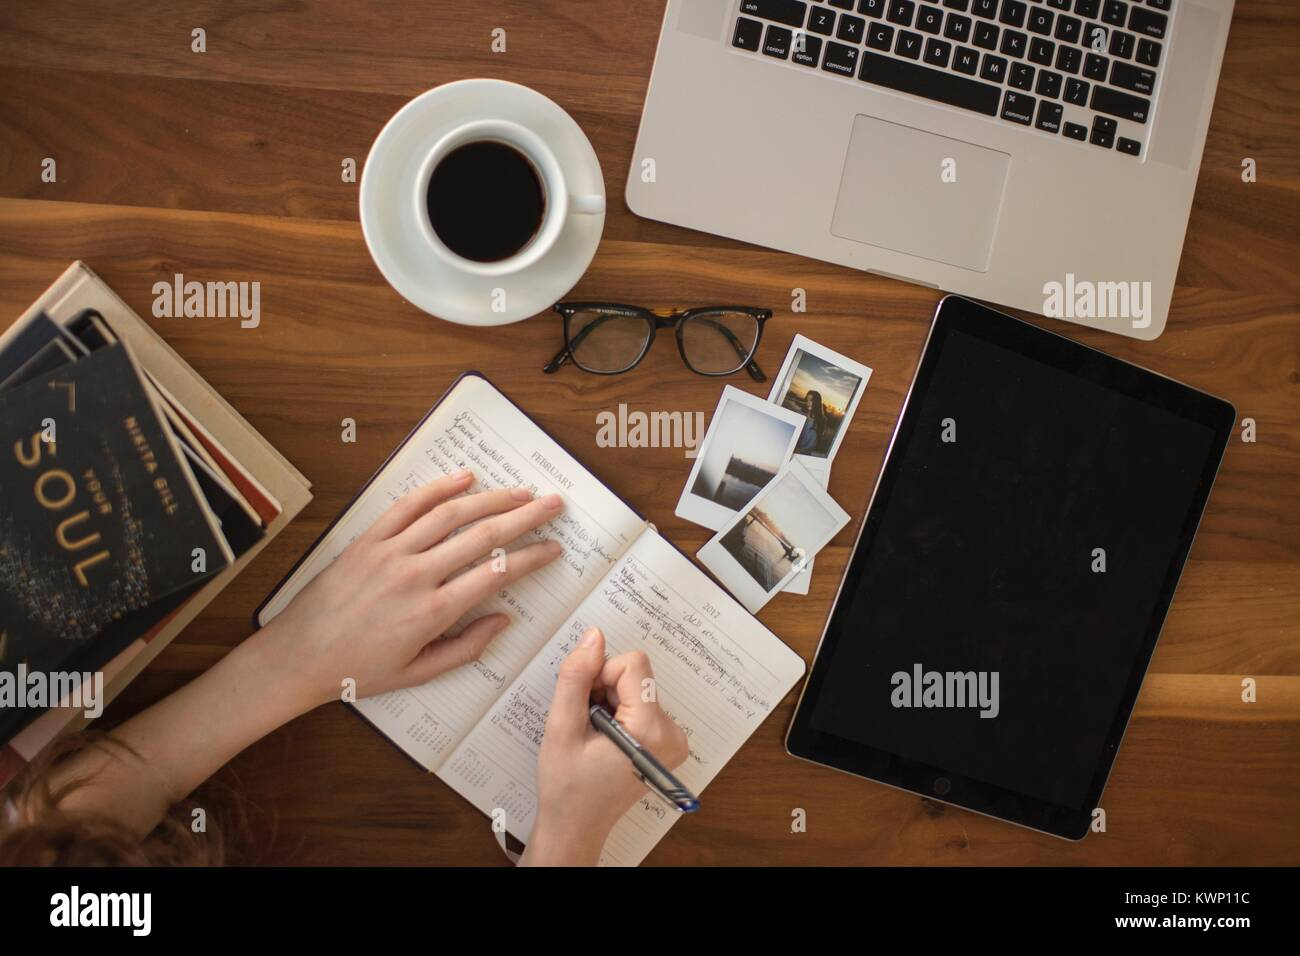 Millennial writing in a travel journal - Stock Image